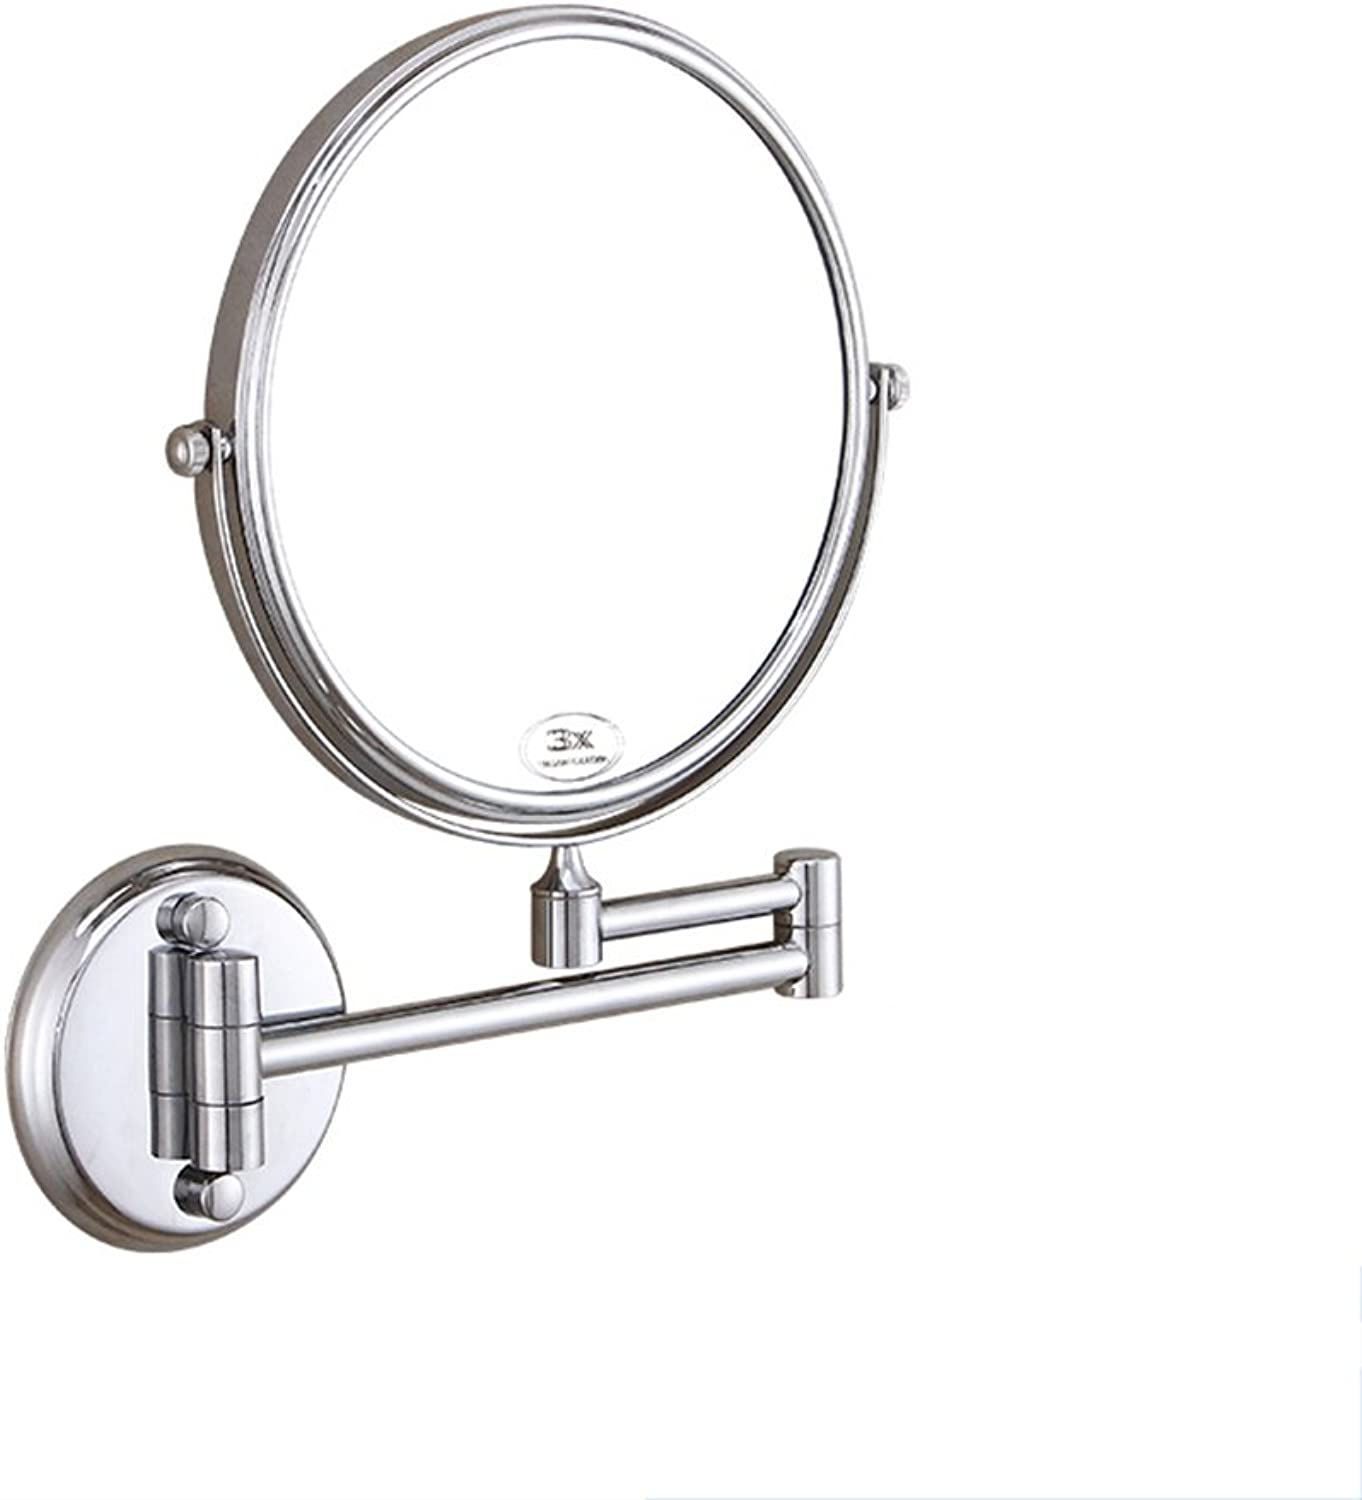 Bathroom Mirror Wall-Mounted Mirror Round Double-Sided Magnifying Glass 1x 3X Folding Beauty Mirror Drilling Inssizetion